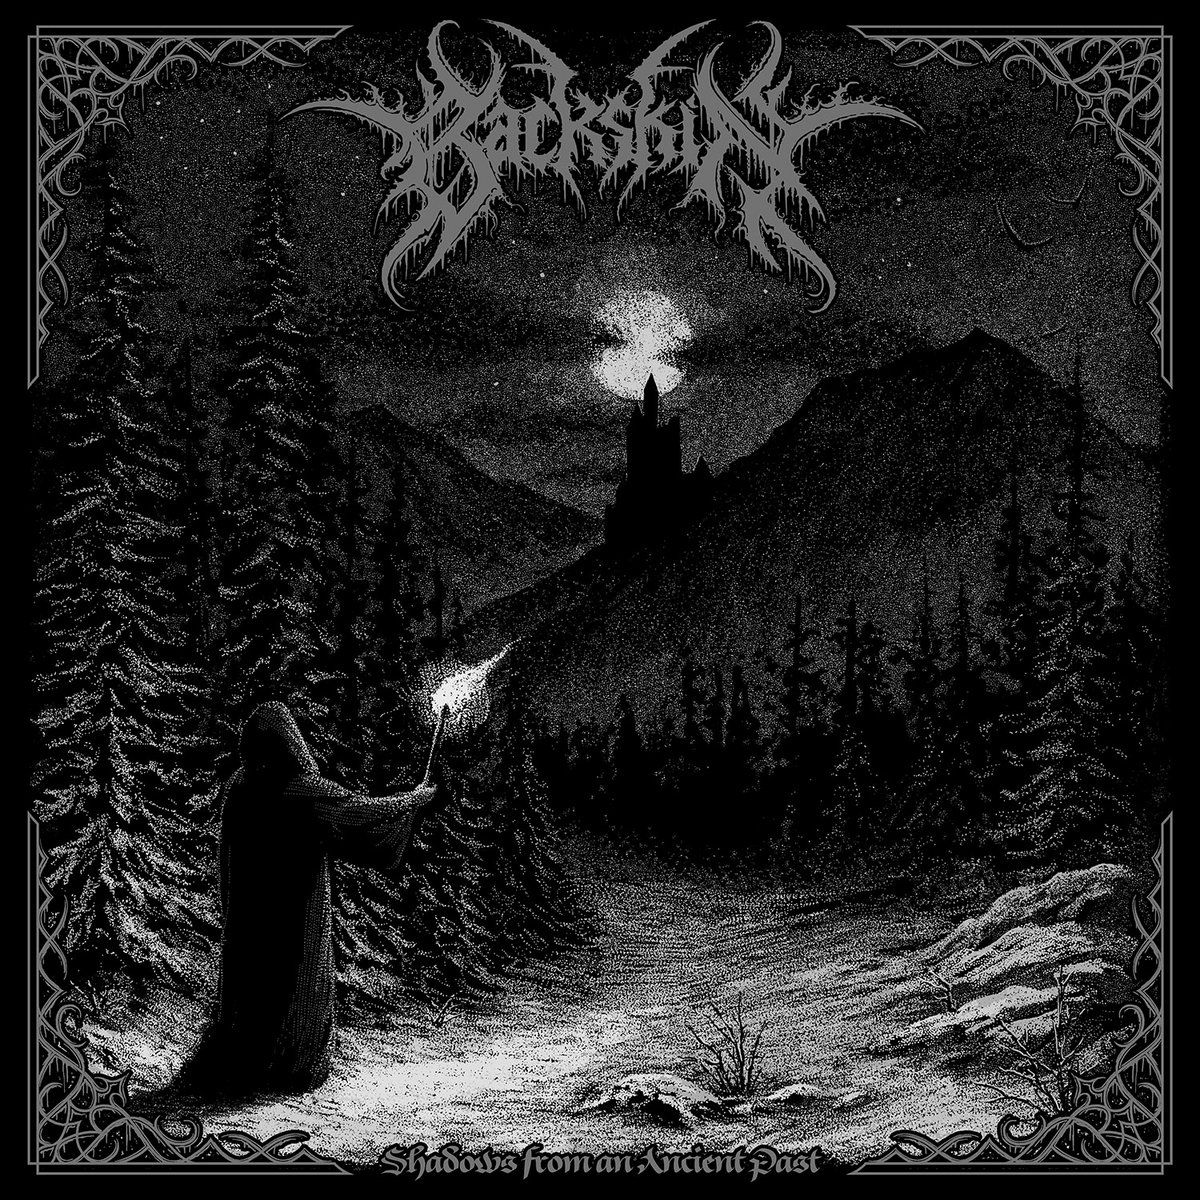 Reviews for Backskin - Shadows from an Ancient Past